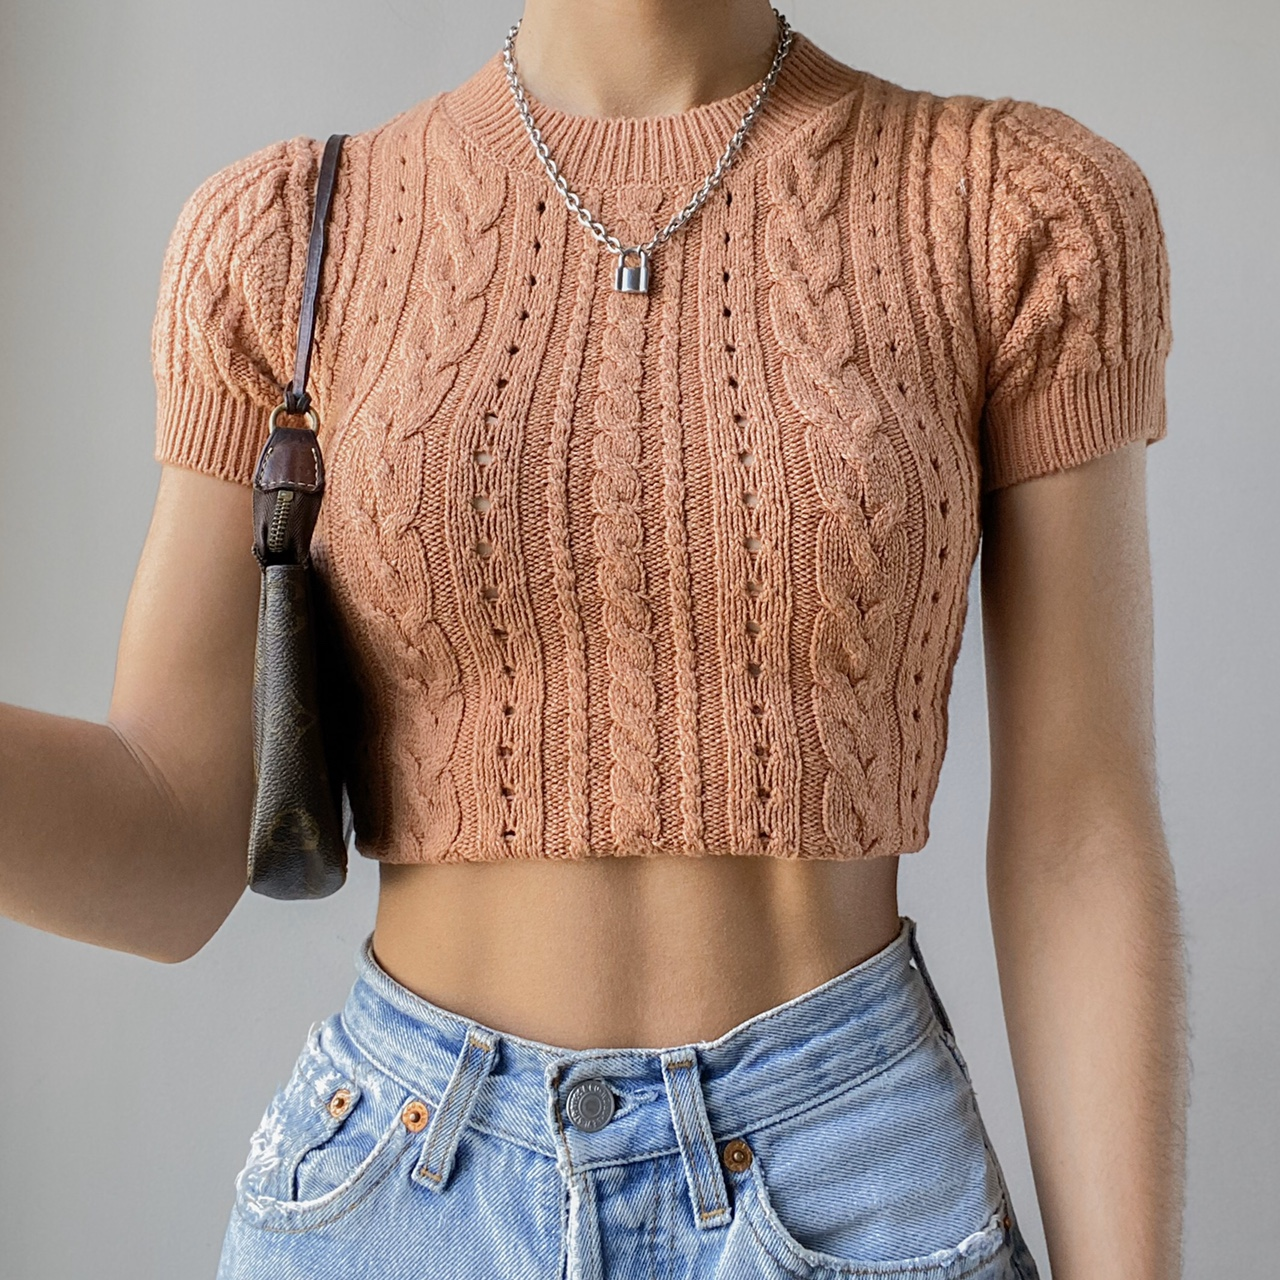 Free People - Short + Sweet Brick Cable Knit